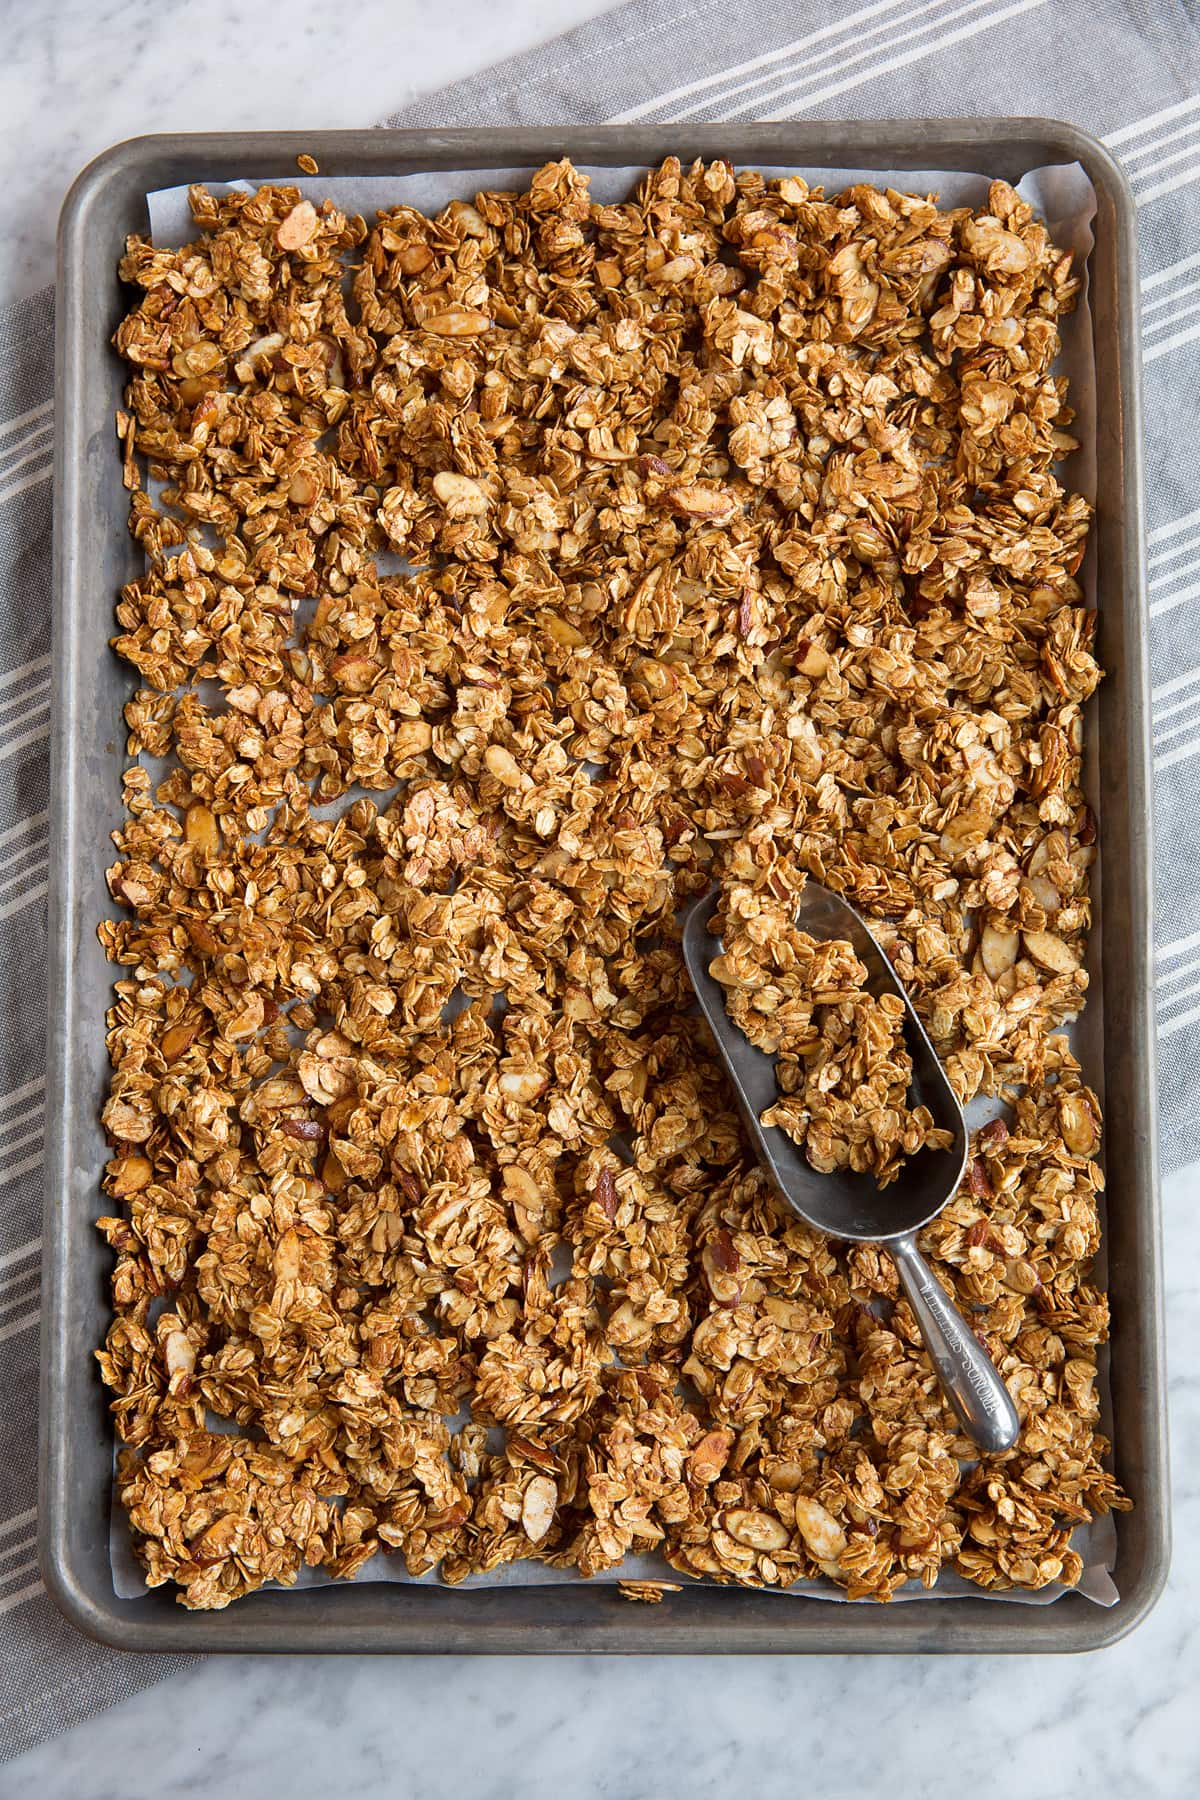 Granola on baking sheet after baking.